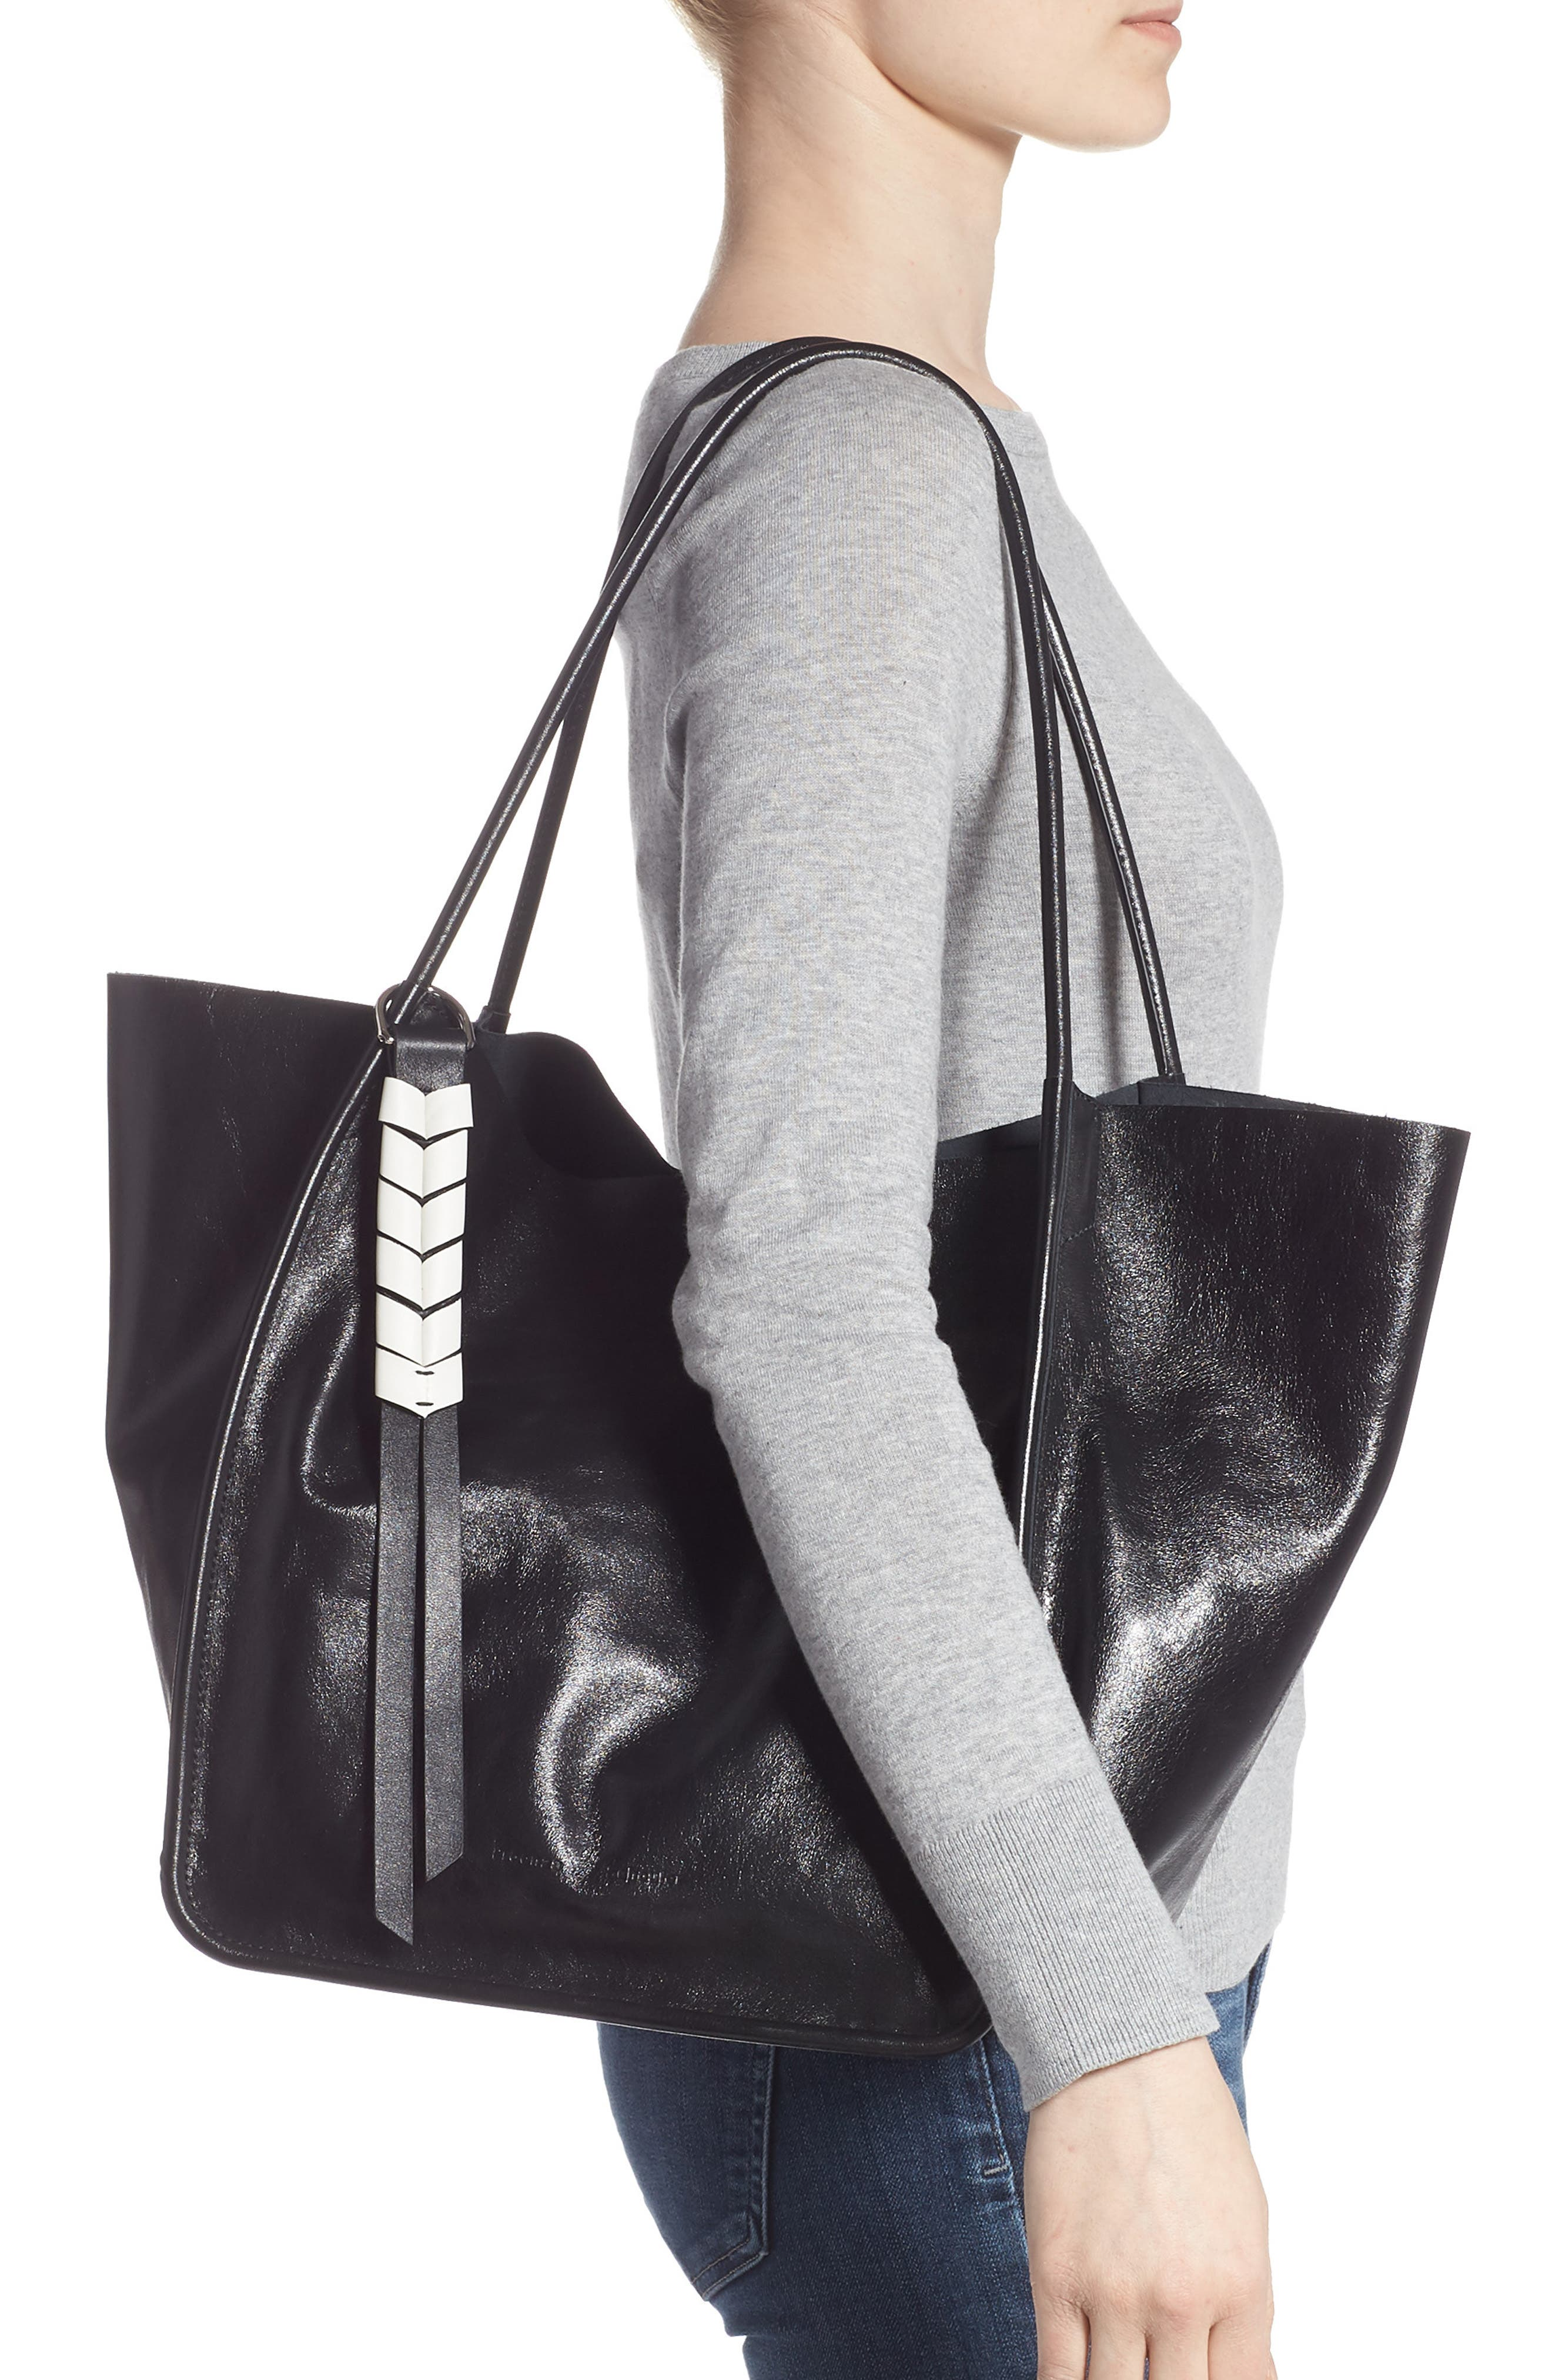 PROENZA SCHOULER, Large Calfskin Leather Tote, Alternate thumbnail 2, color, BLACK